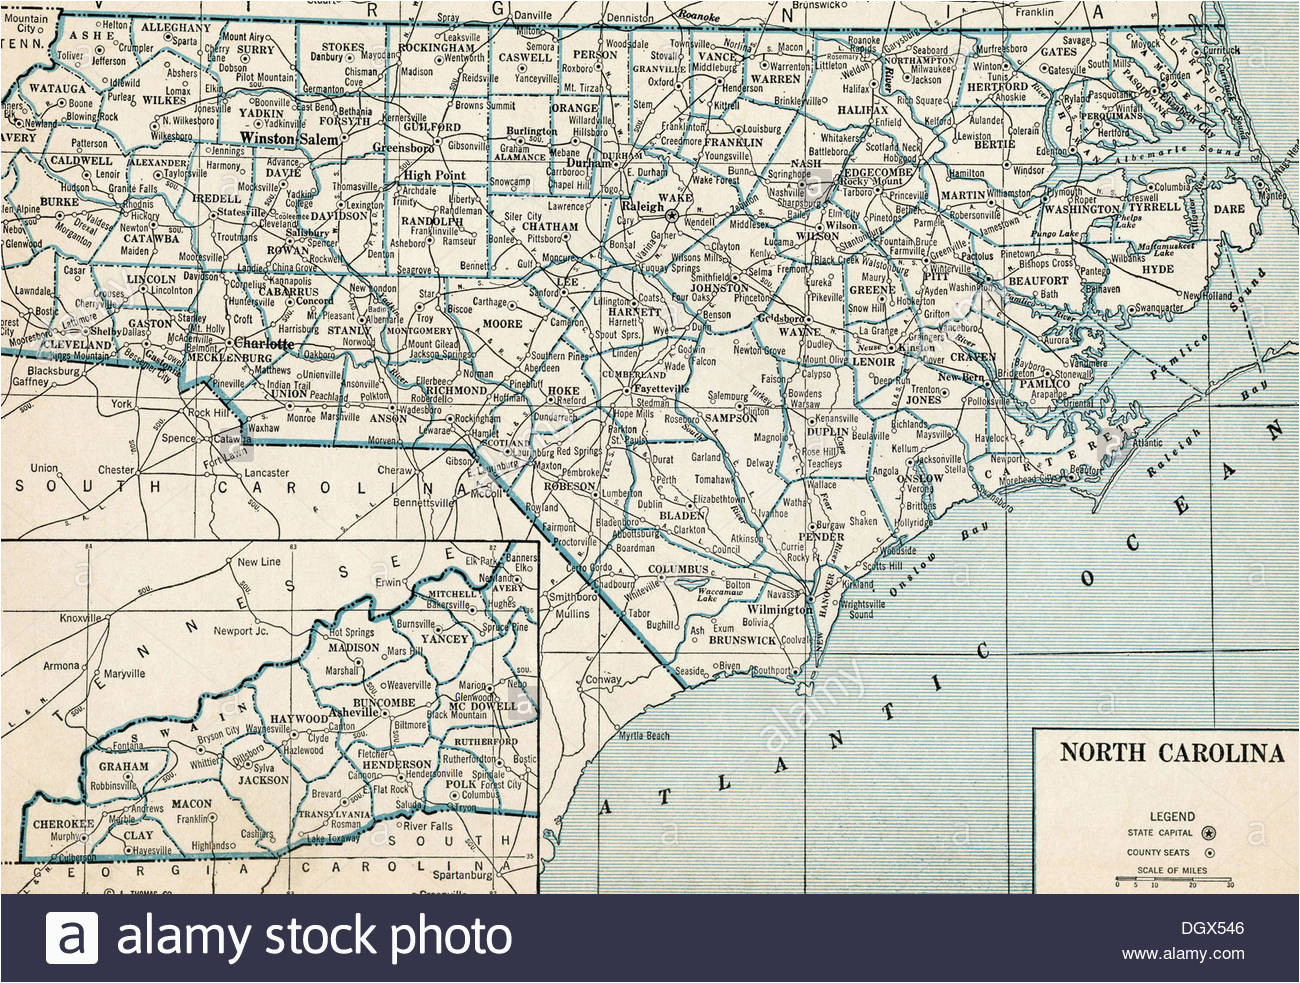 north carolina state map stock photos north carolina state map